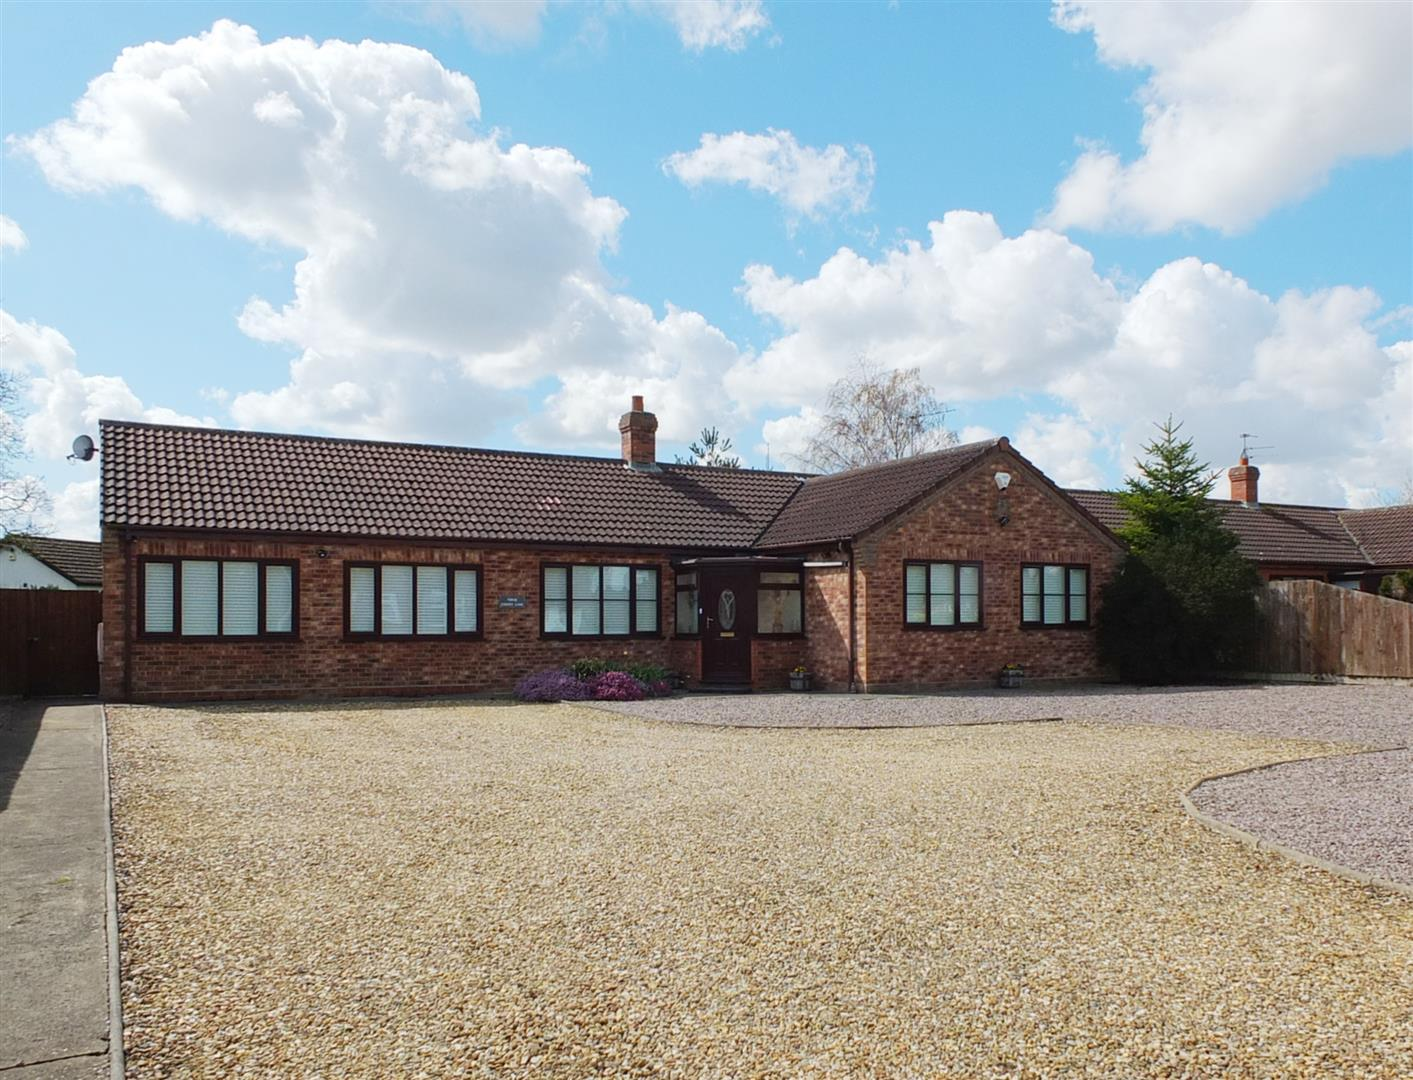 3 bed detached bungalow for sale in Cherry Lane, Fleet Hargate Holbeach Spalding - Property Image 1